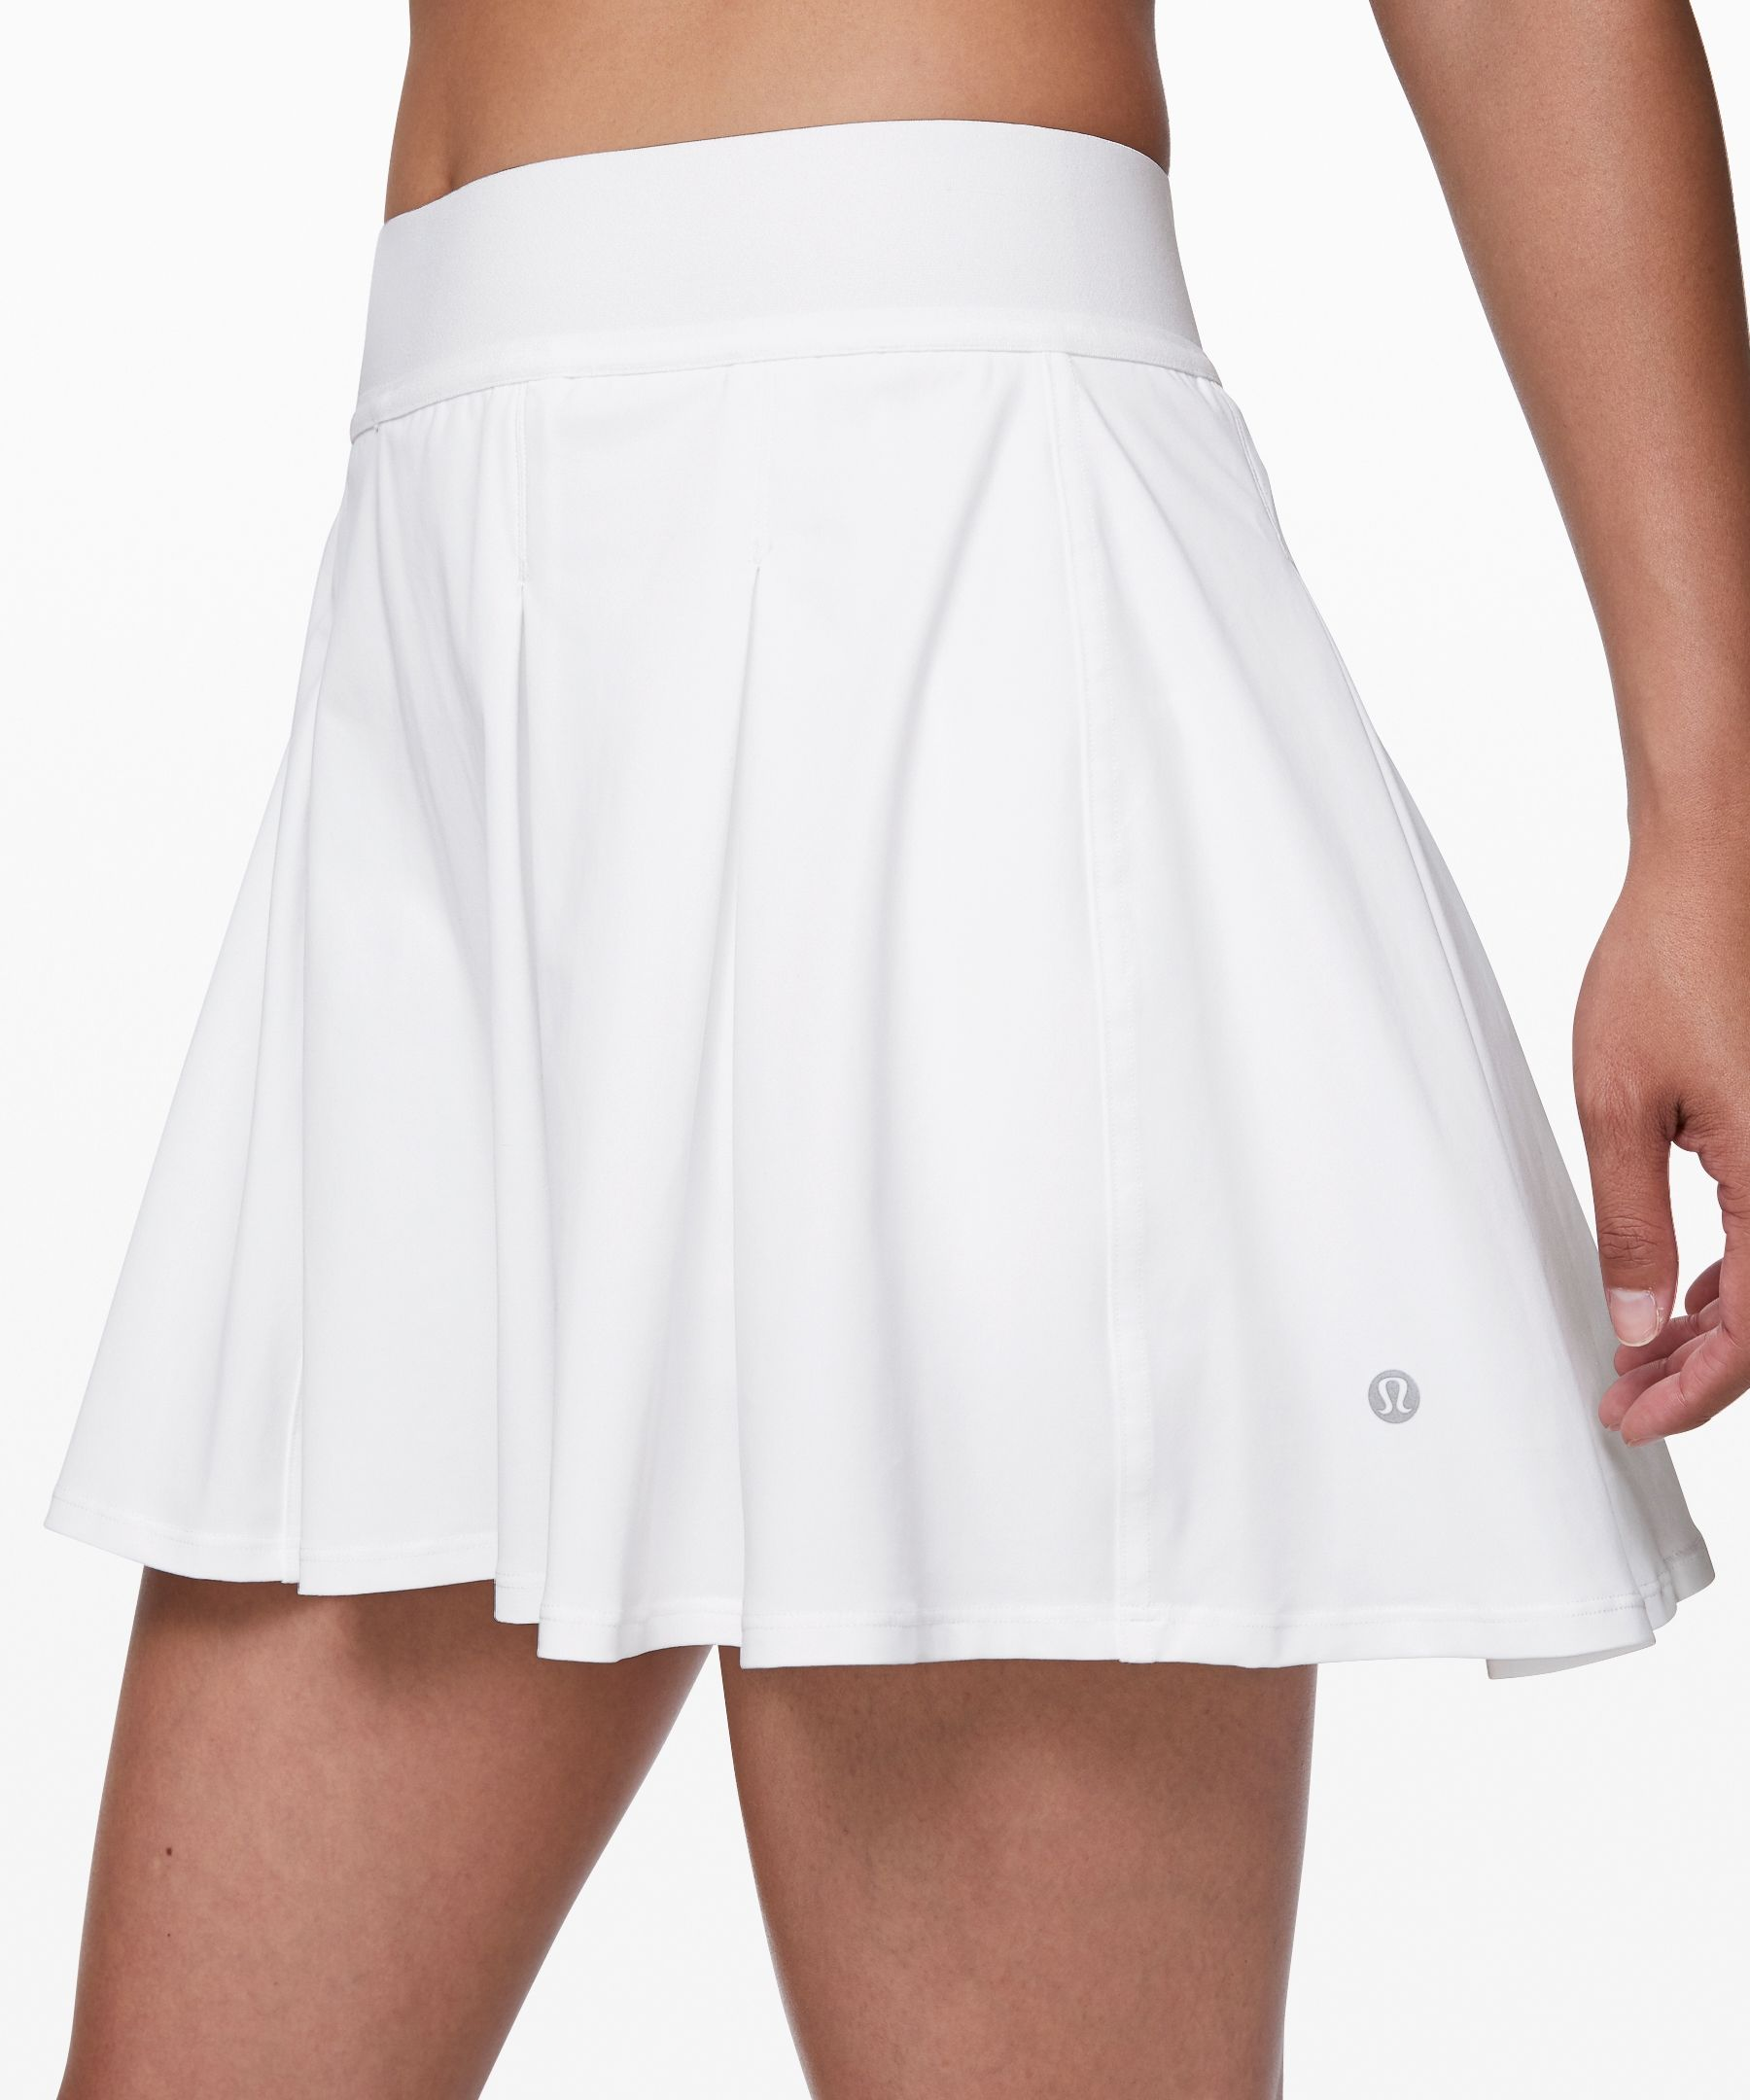 Lululemon Women S Tennis Time Skirt 15 White Size 4 Workout Skirt Outfit Tennis Outfit Women Tennis Skirt Outfit